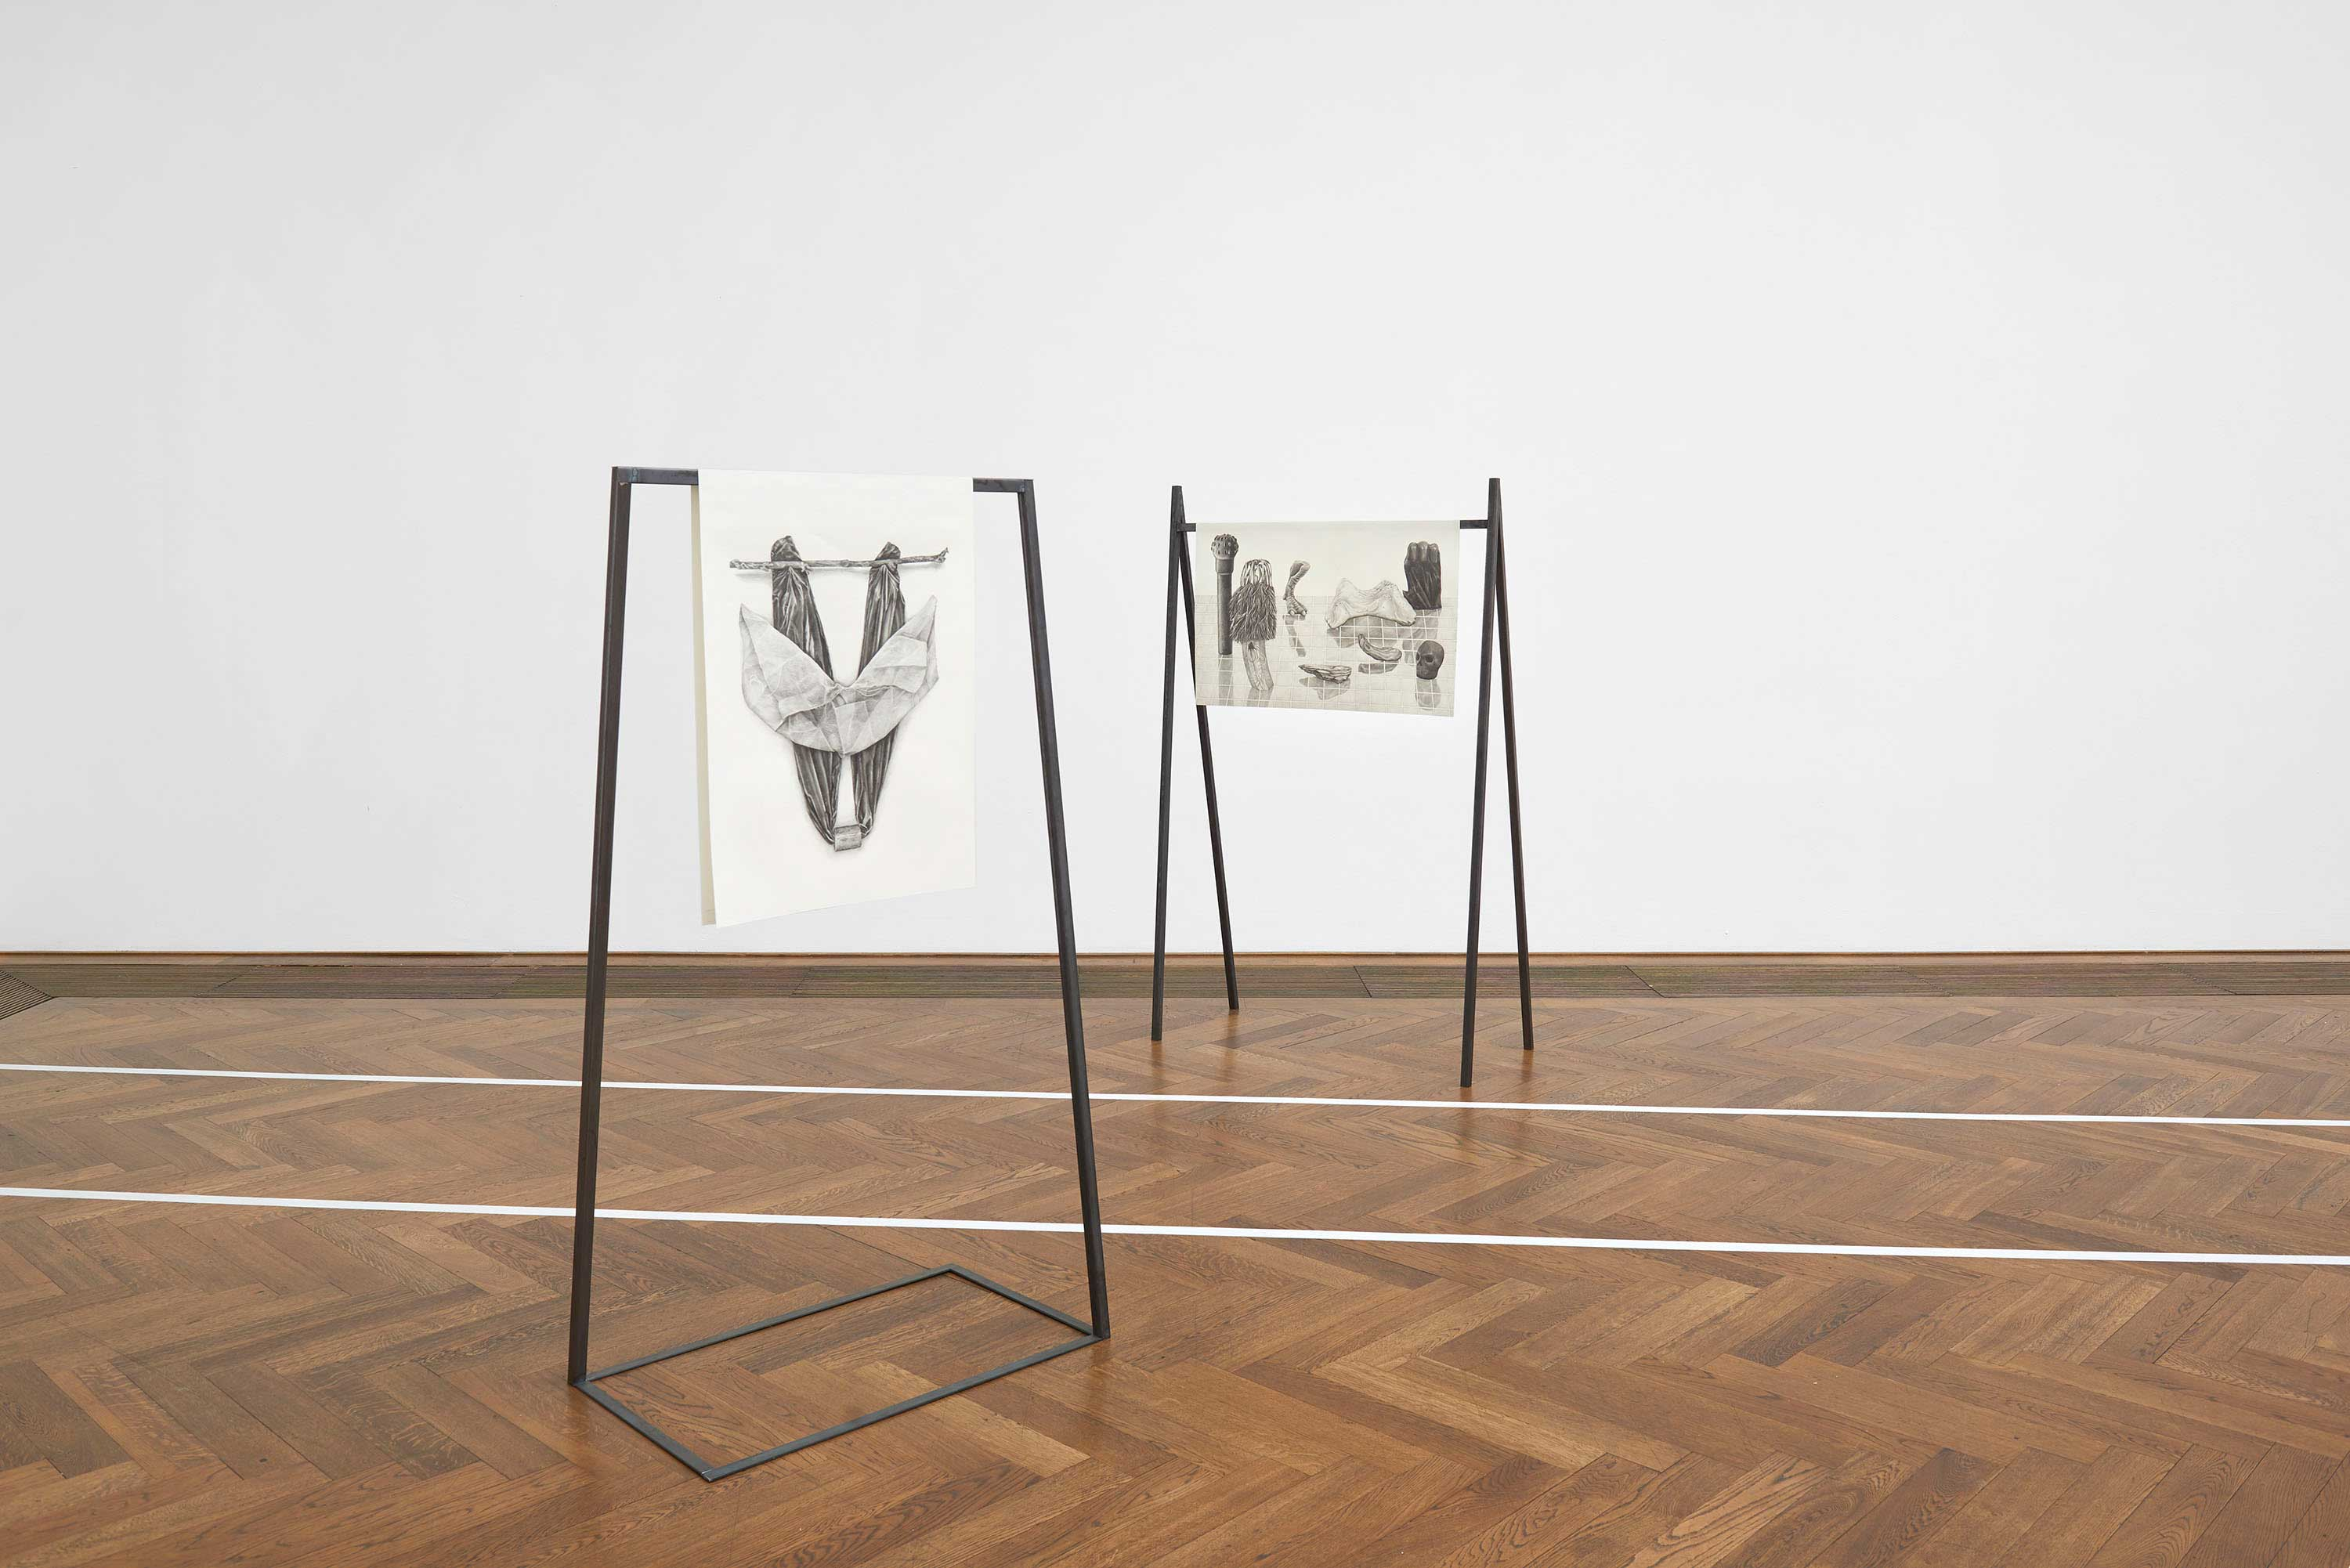 Vue d'exposition : Situation-1-und-andere Kunsthalle-Basel – 2020